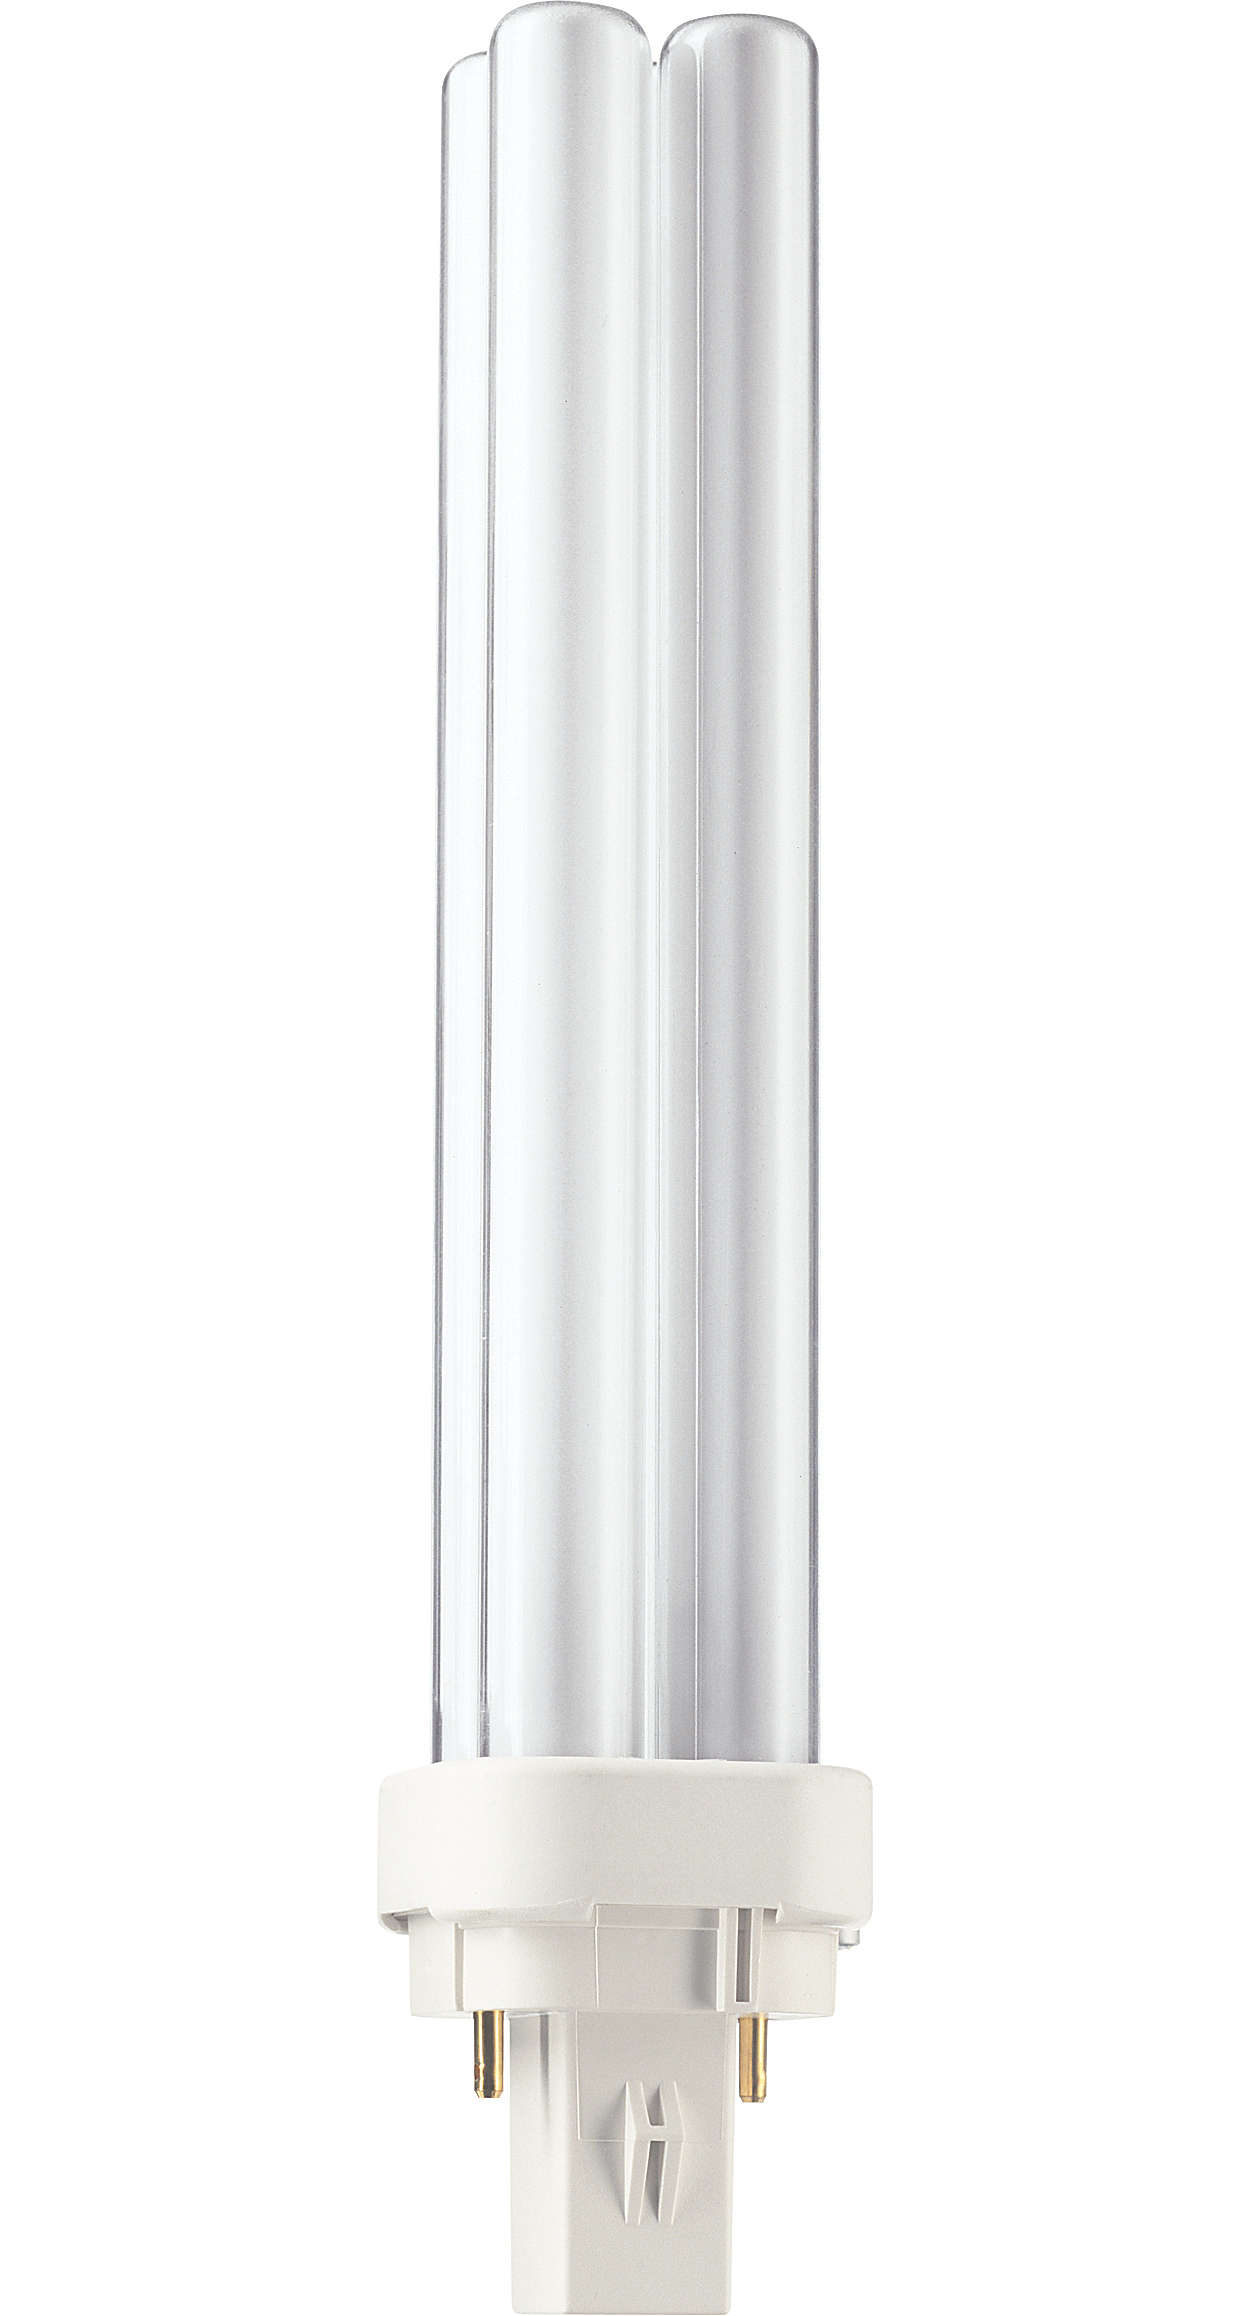 High Color Rendering, High Efficacy, Long Life Lamps